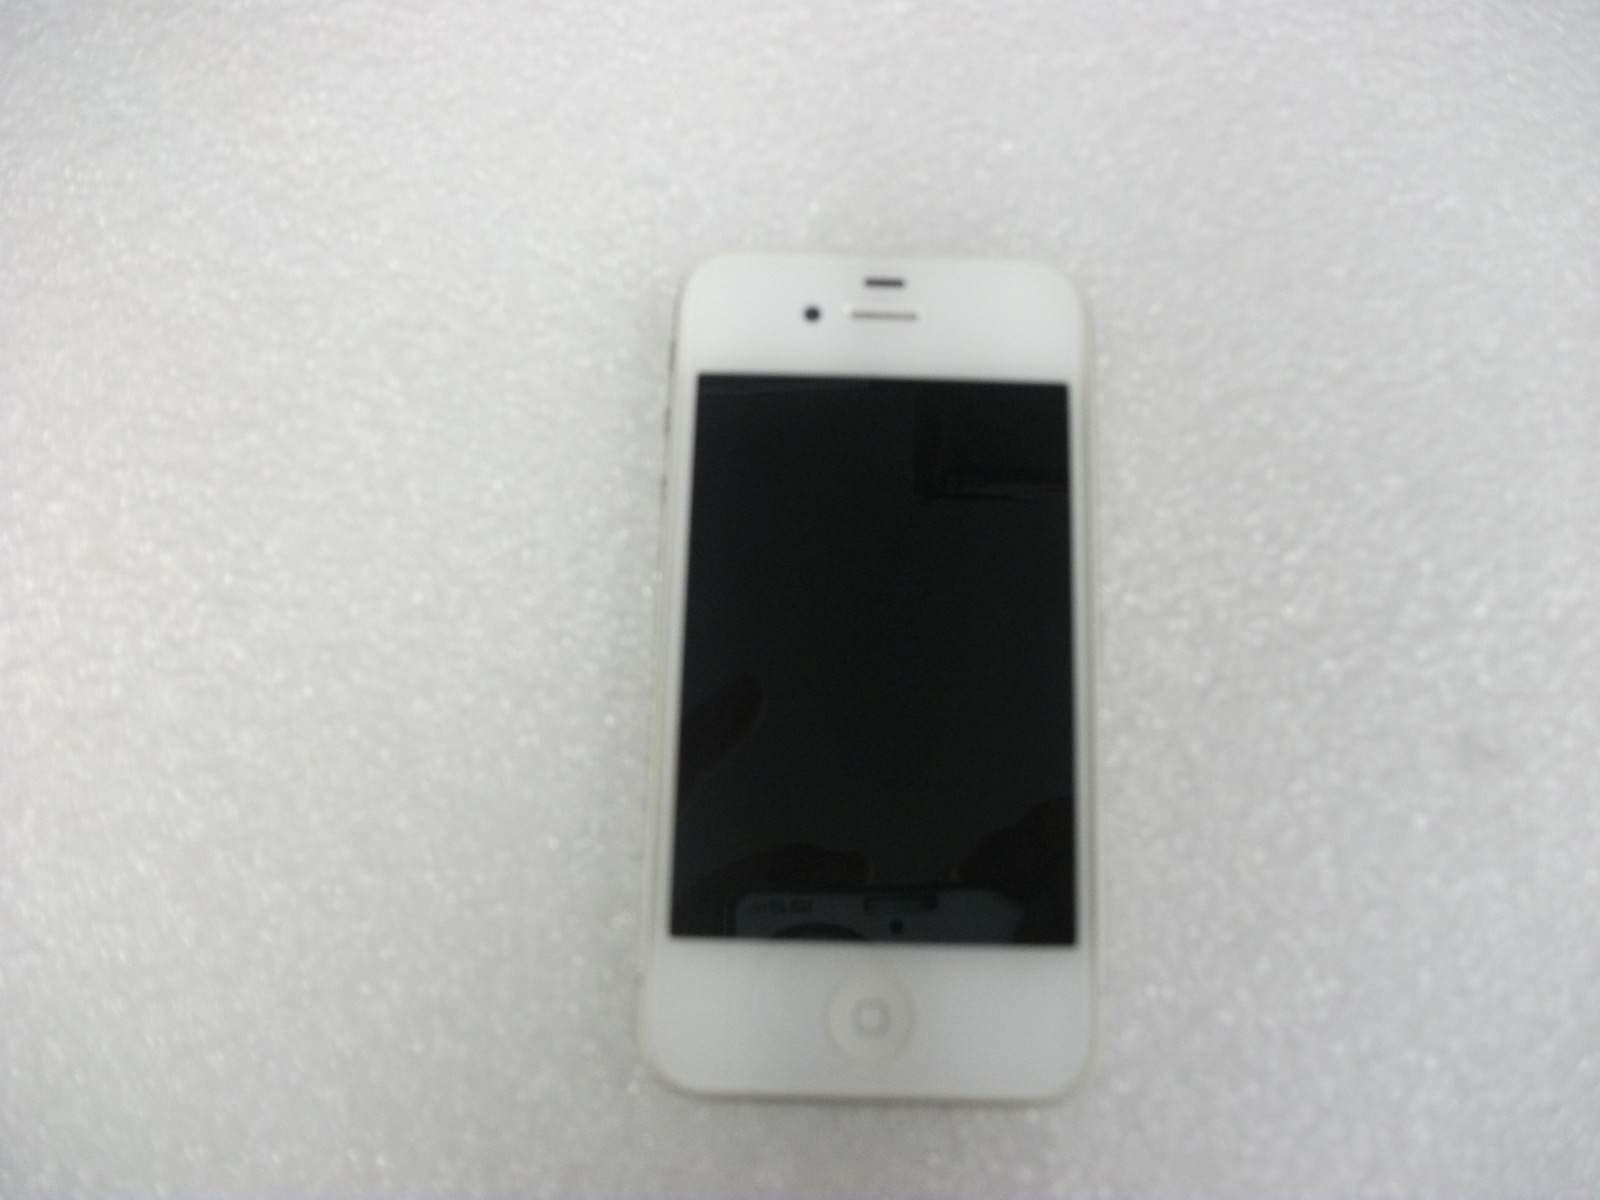 Precio Iphone 4s Libre Refurbished Iphone Que Es Used Iphone